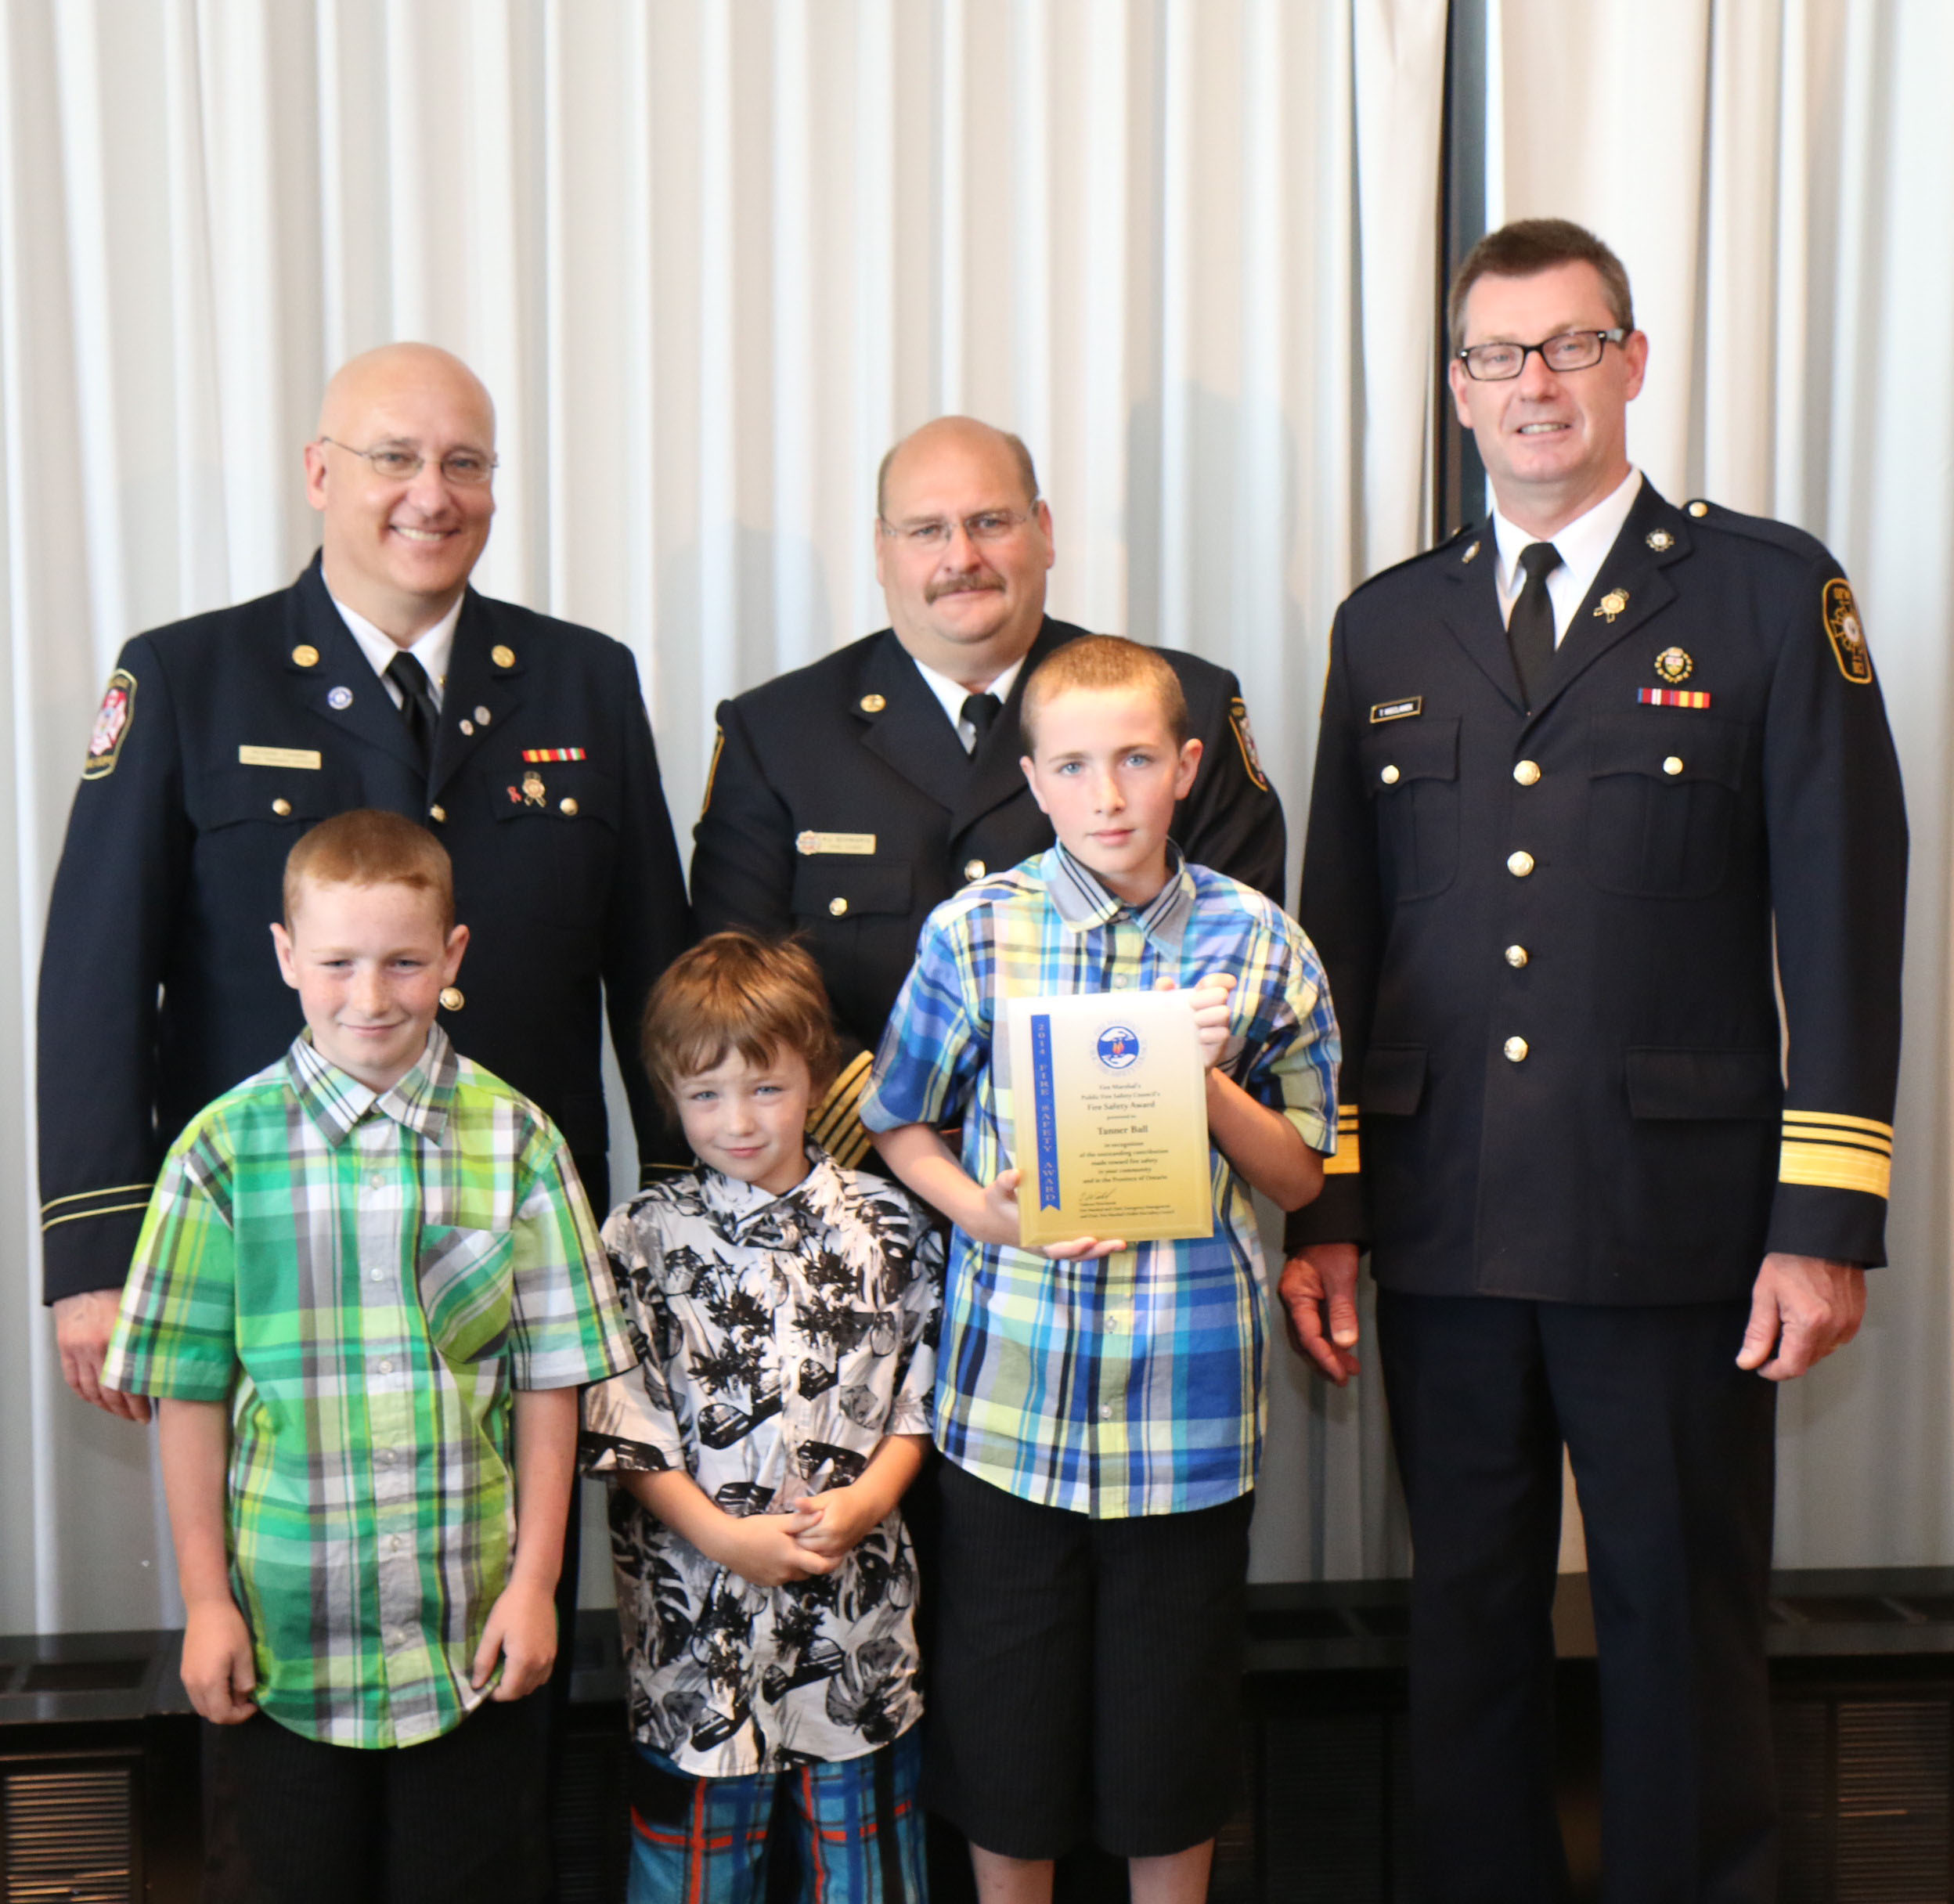 Tanner Ball fire Safety Award from Fire Marshal.